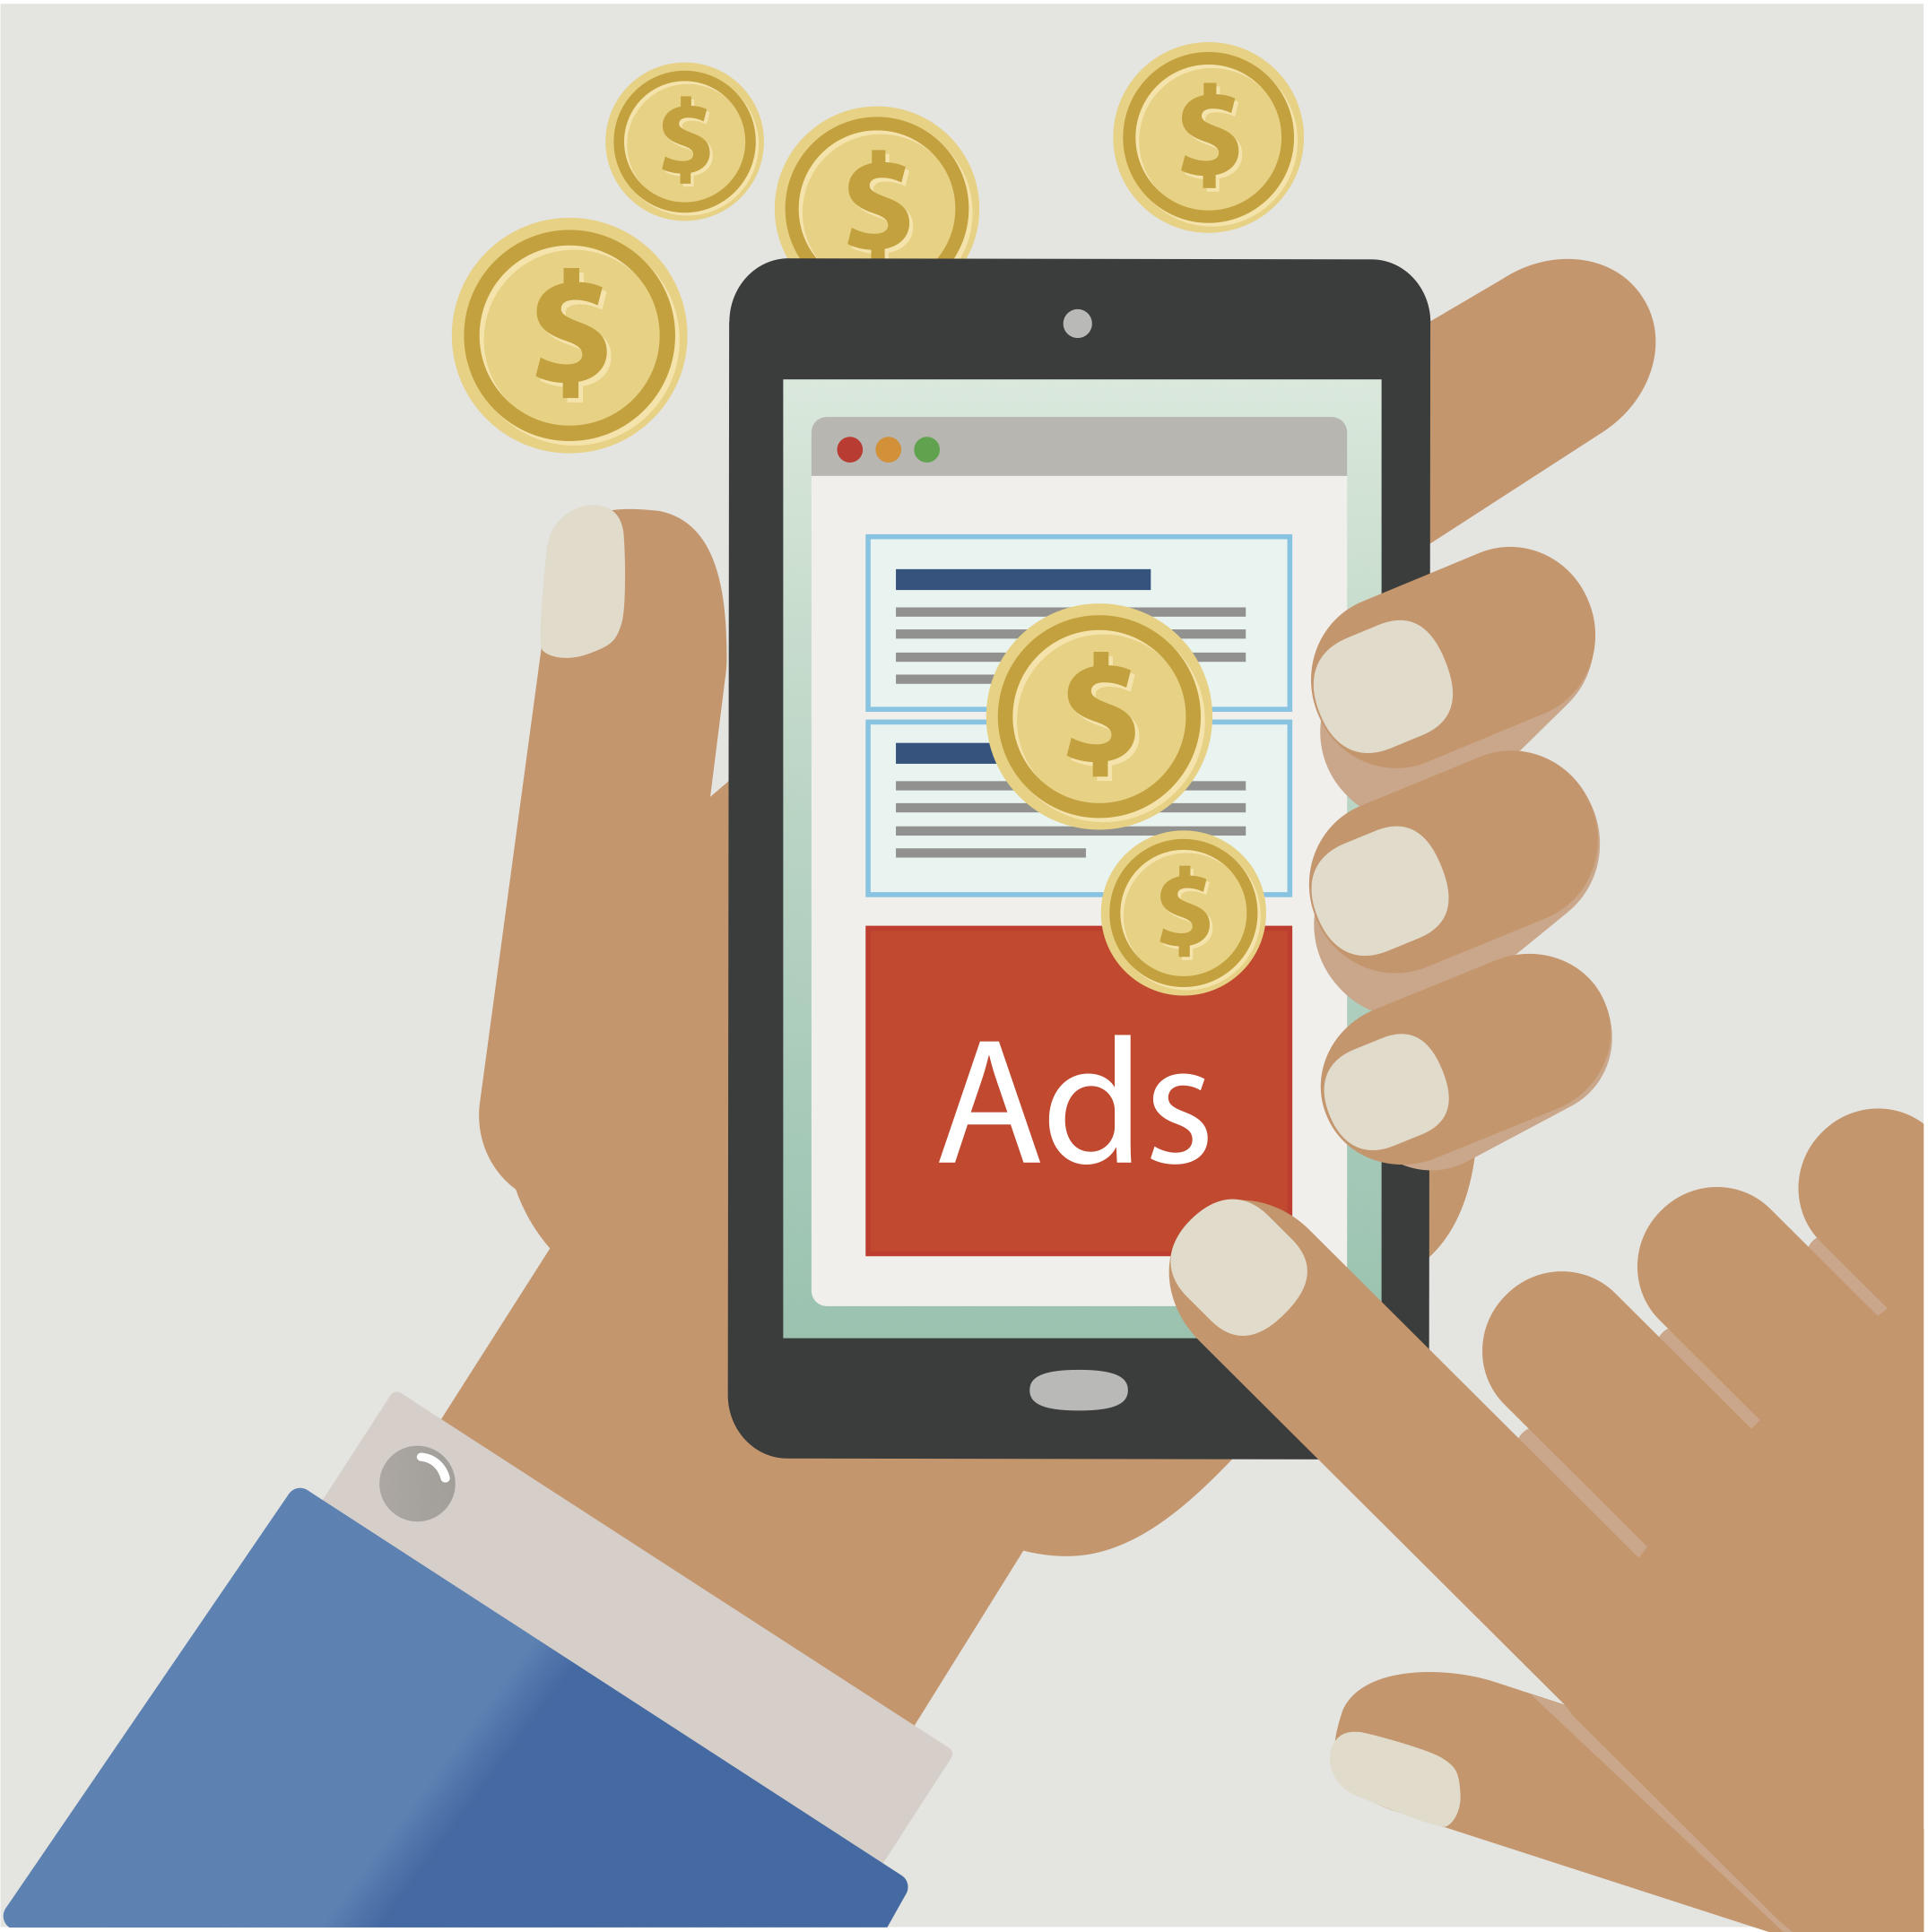 Illustration of a smartphone screen with ads.